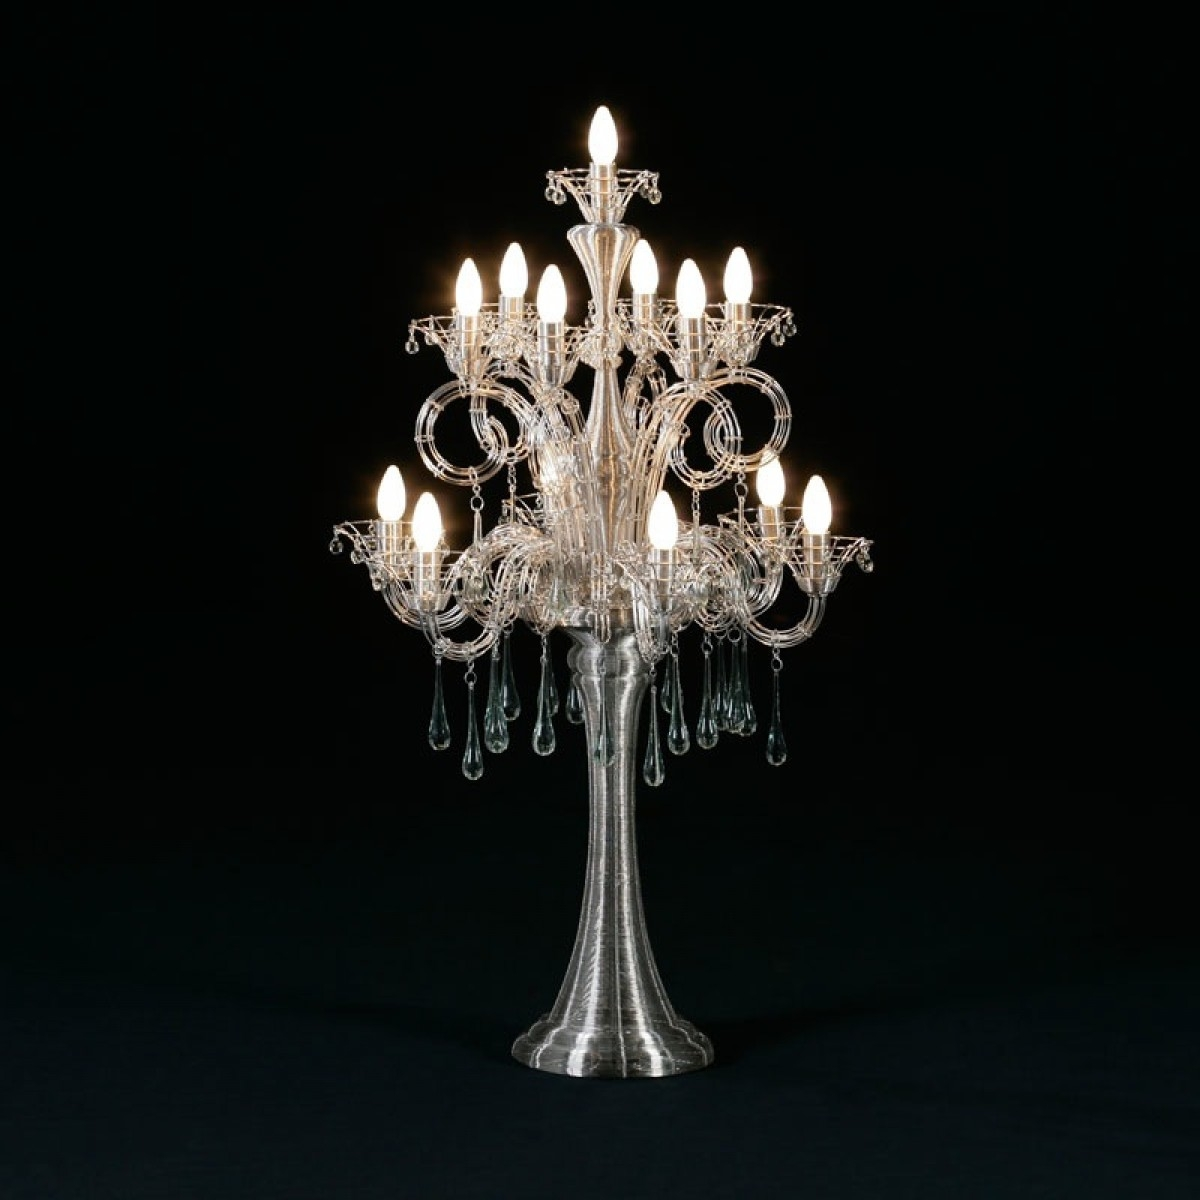 Table Chandelier New For Your Home Decoration Ideas With Table With Regard To Table Chandeliers (View 6 of 15)